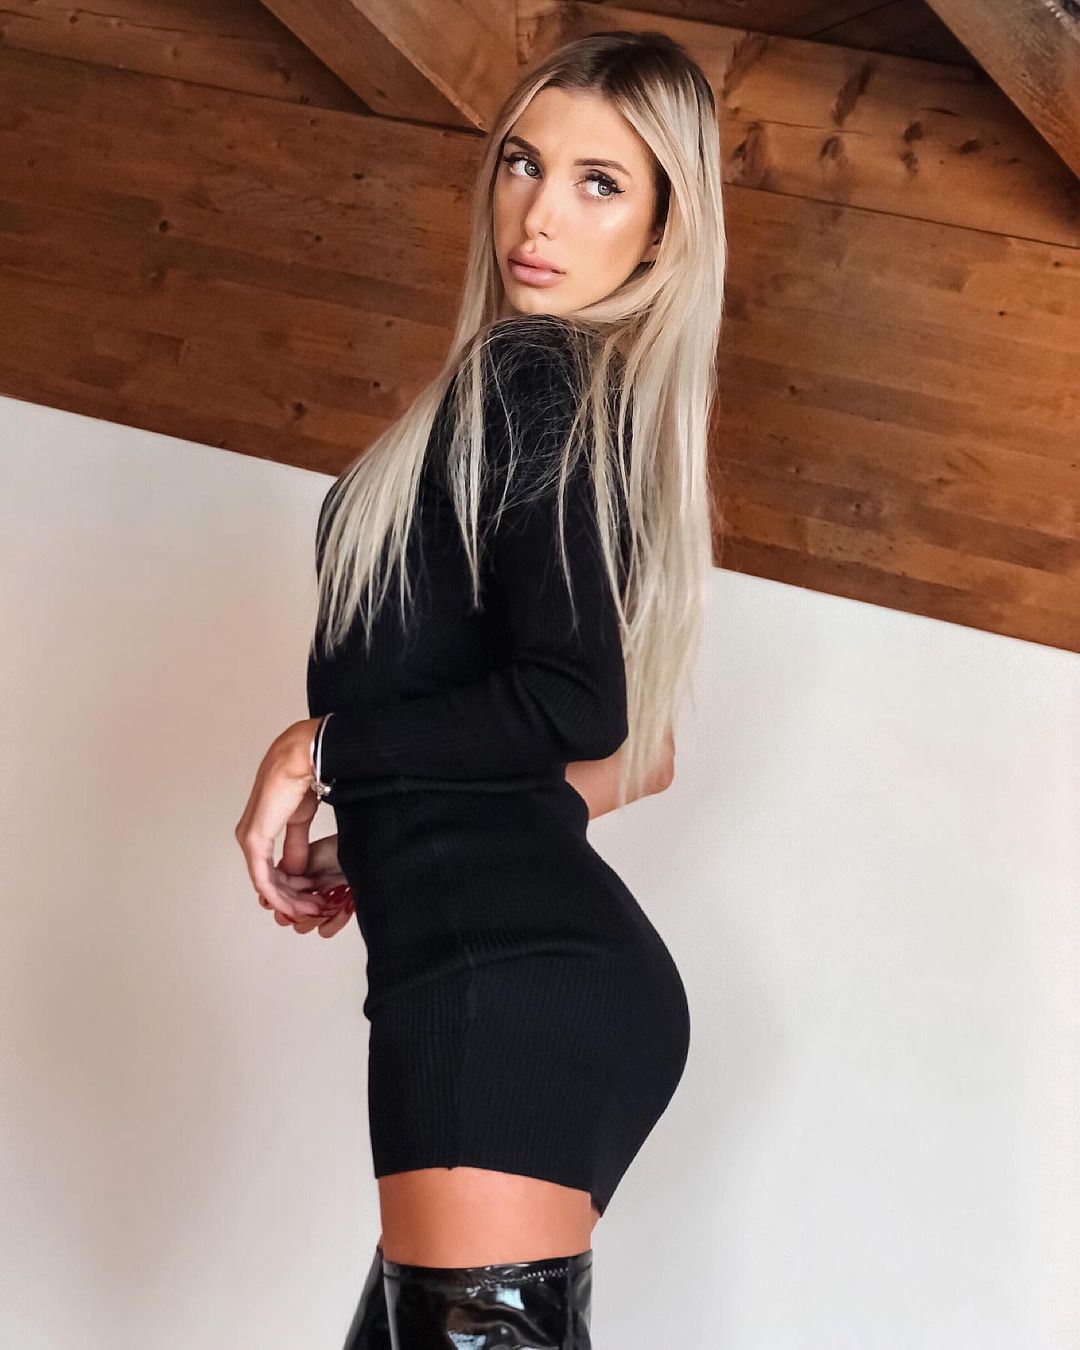 Zardini-Rossana-Wallpapers-Insta-Fit-Bio-5